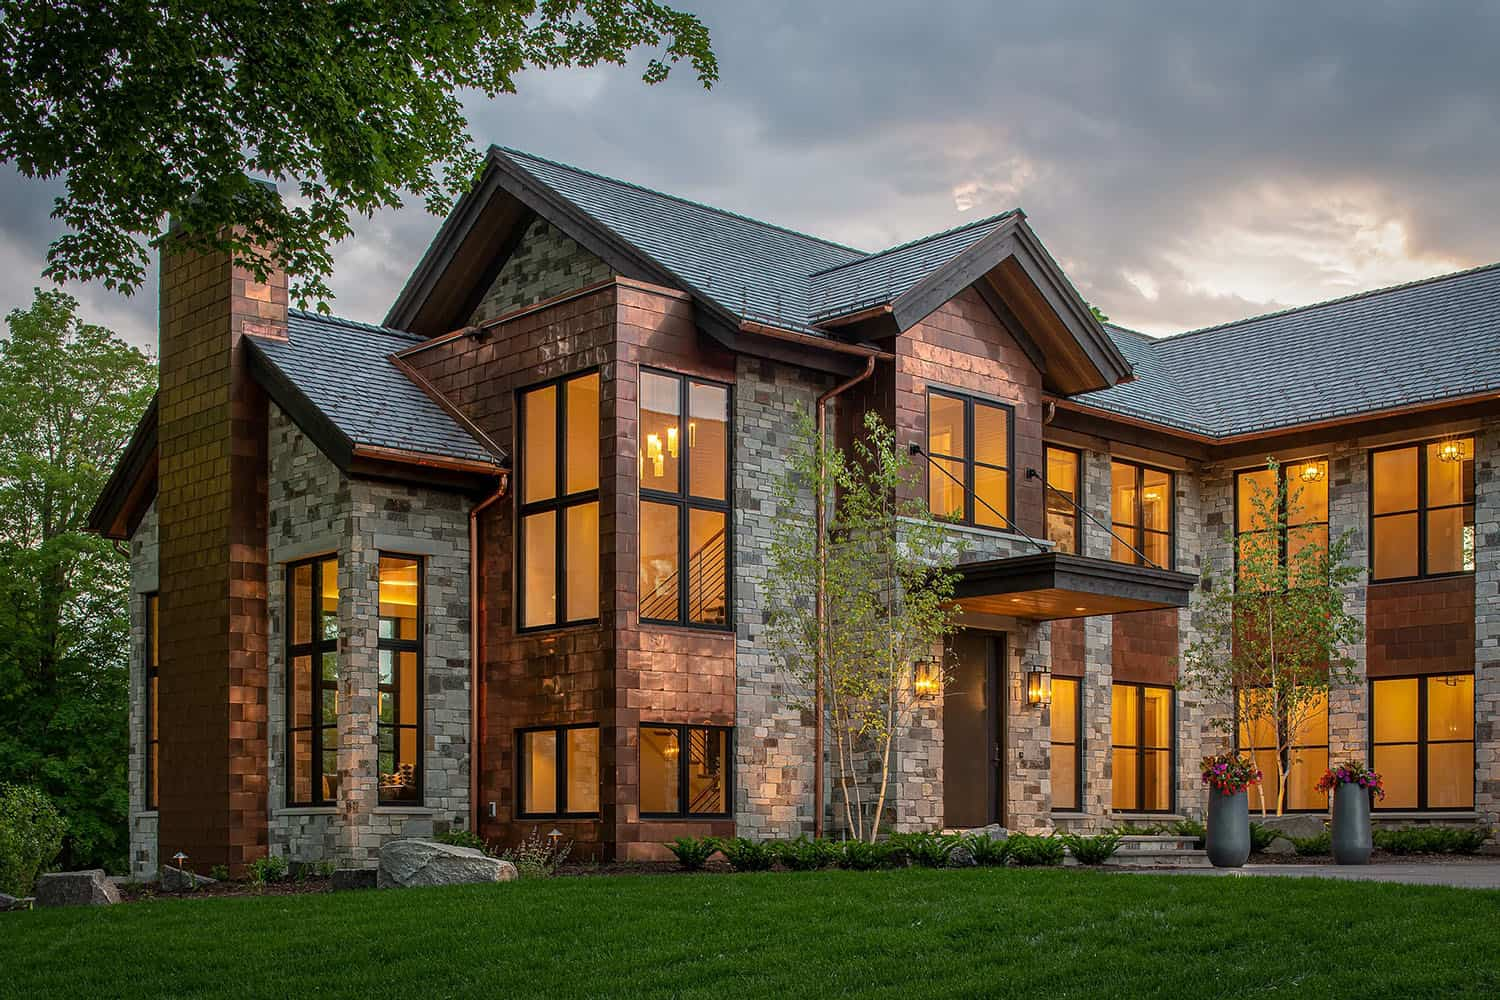 Astounding mountain-inspired home with modern rustic details in Midwest